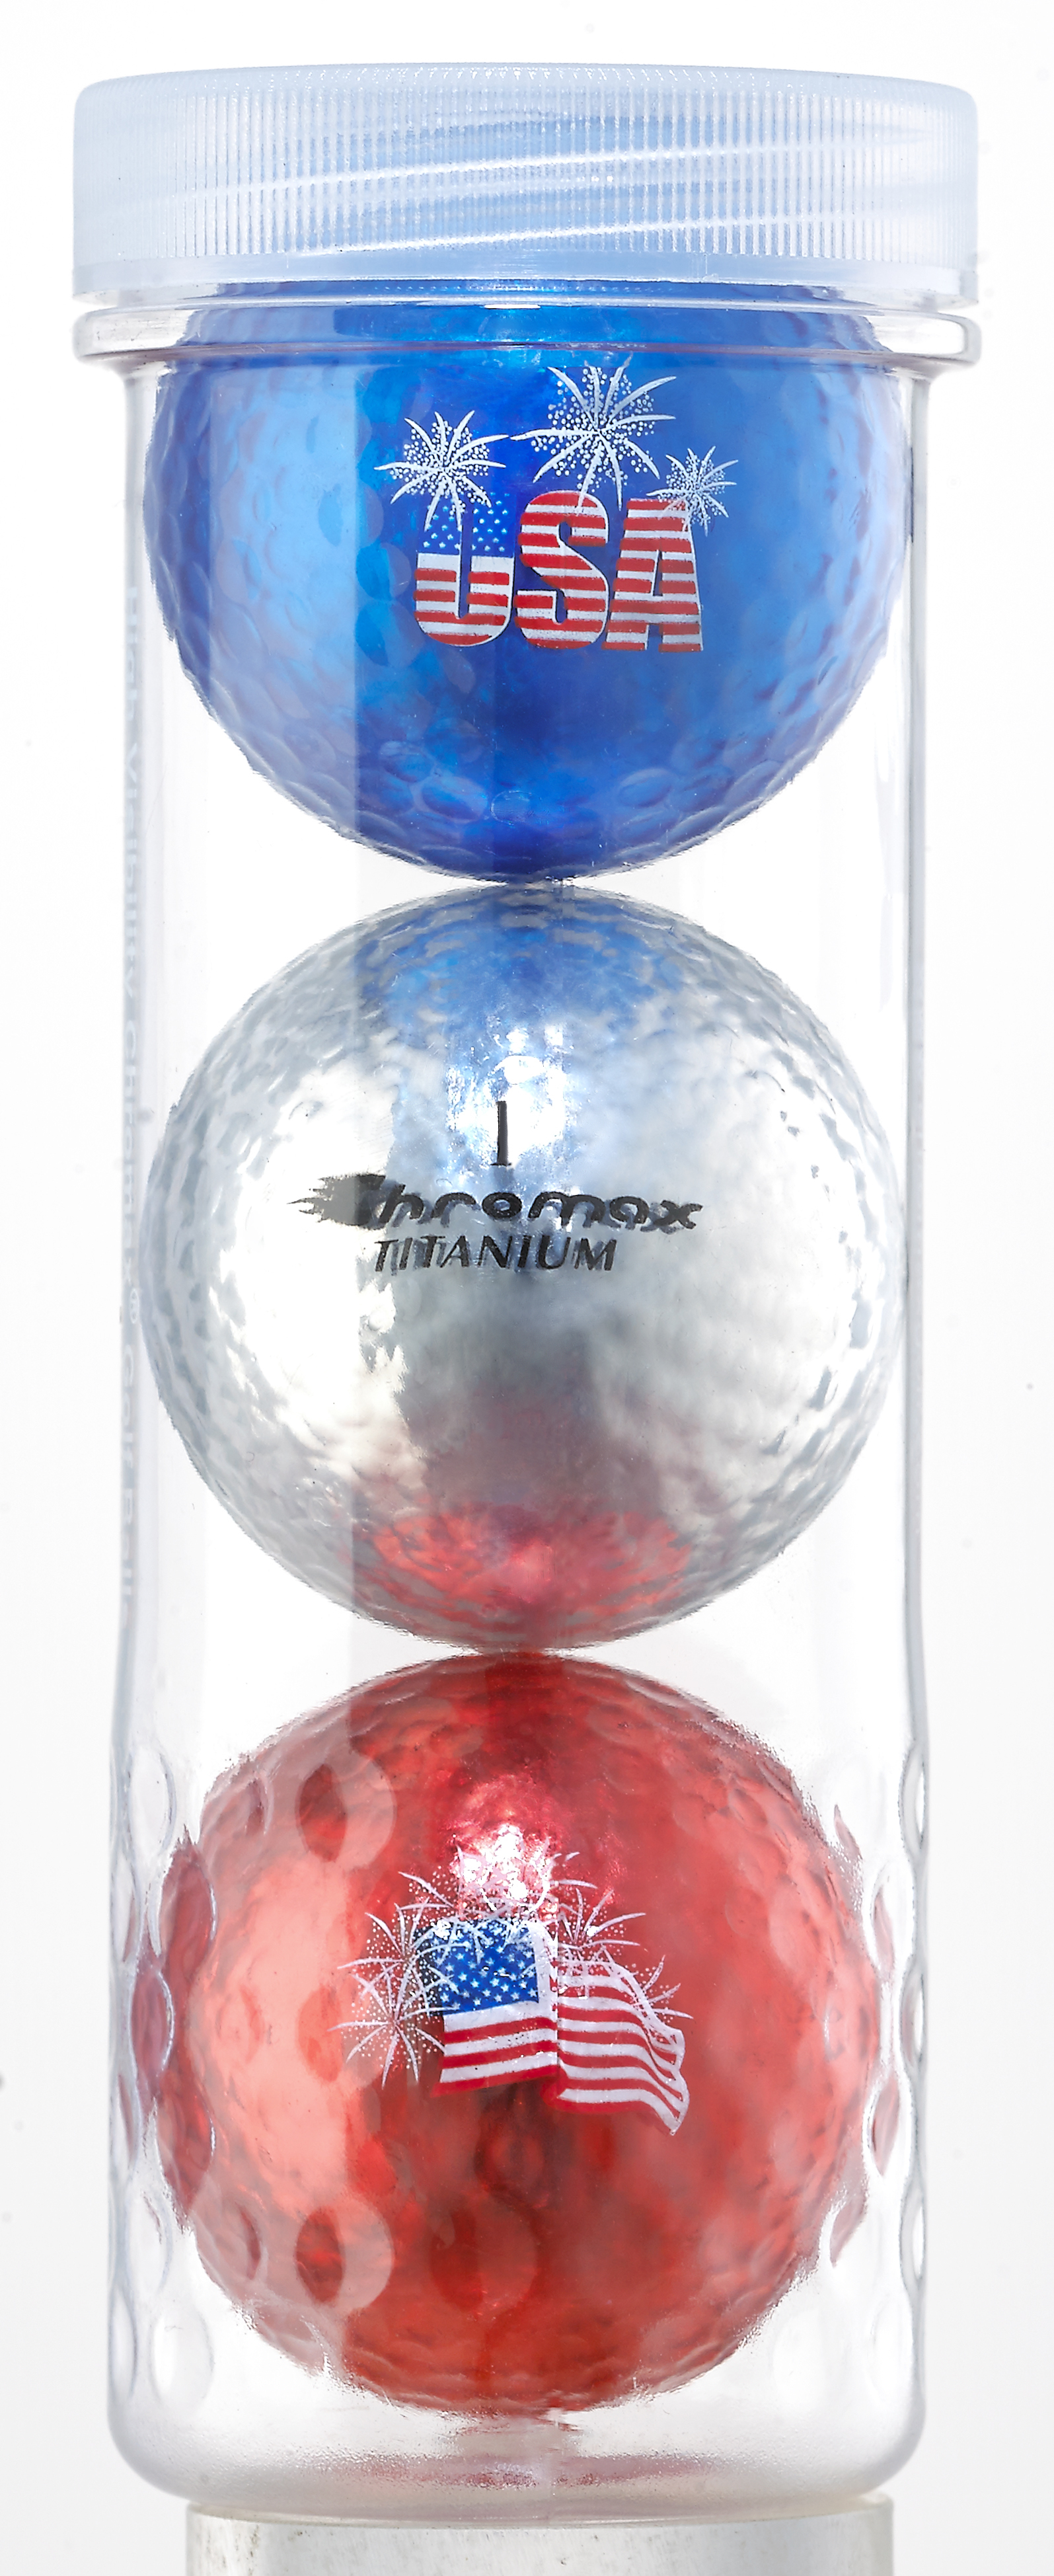 Chromax® USA 3 Ball Tube - (Blue, Silver & Red) CUSA3